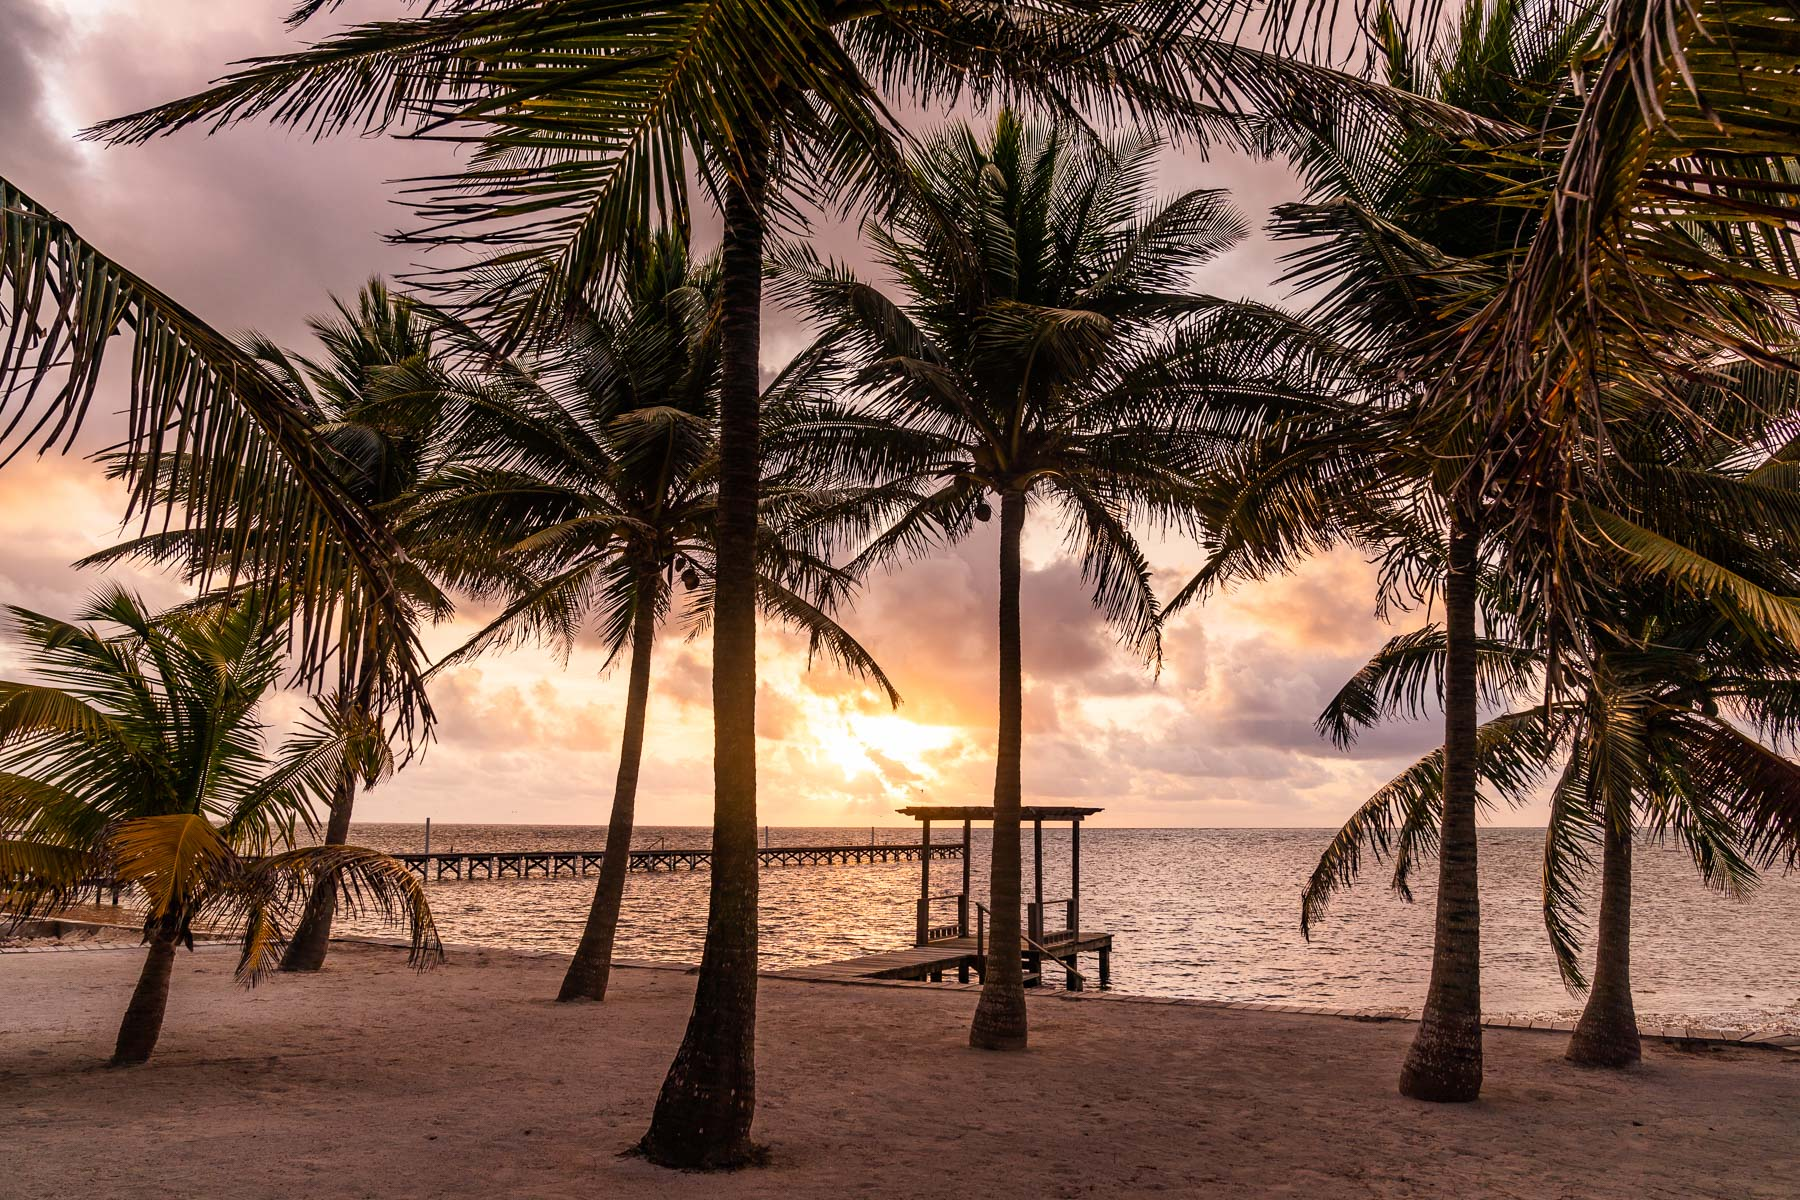 2018.05.01 Ambergris Caye San Pedro Belize © Jennifer Carr Photography Virginia Beach-8.jpg